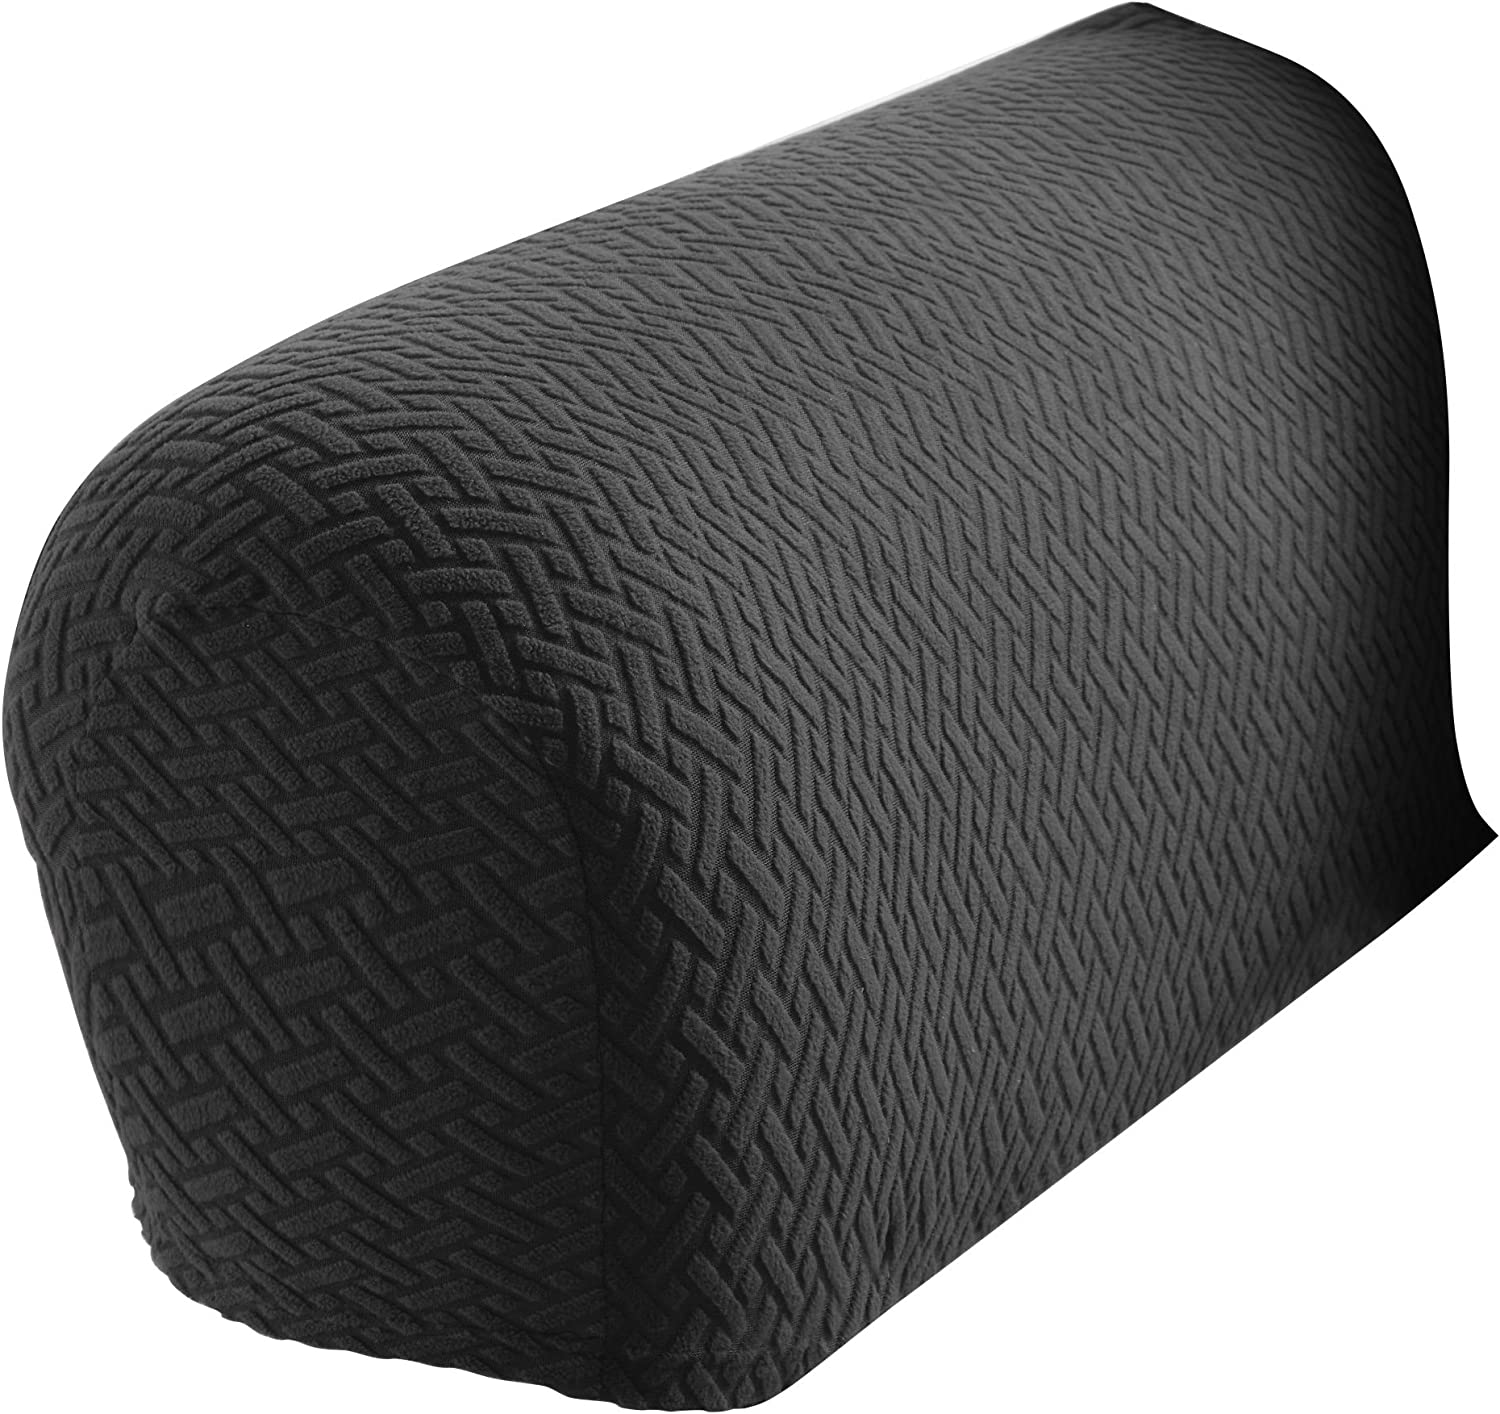 Madison Charcoal Mason Stretch Armrest Covers, 2 Count